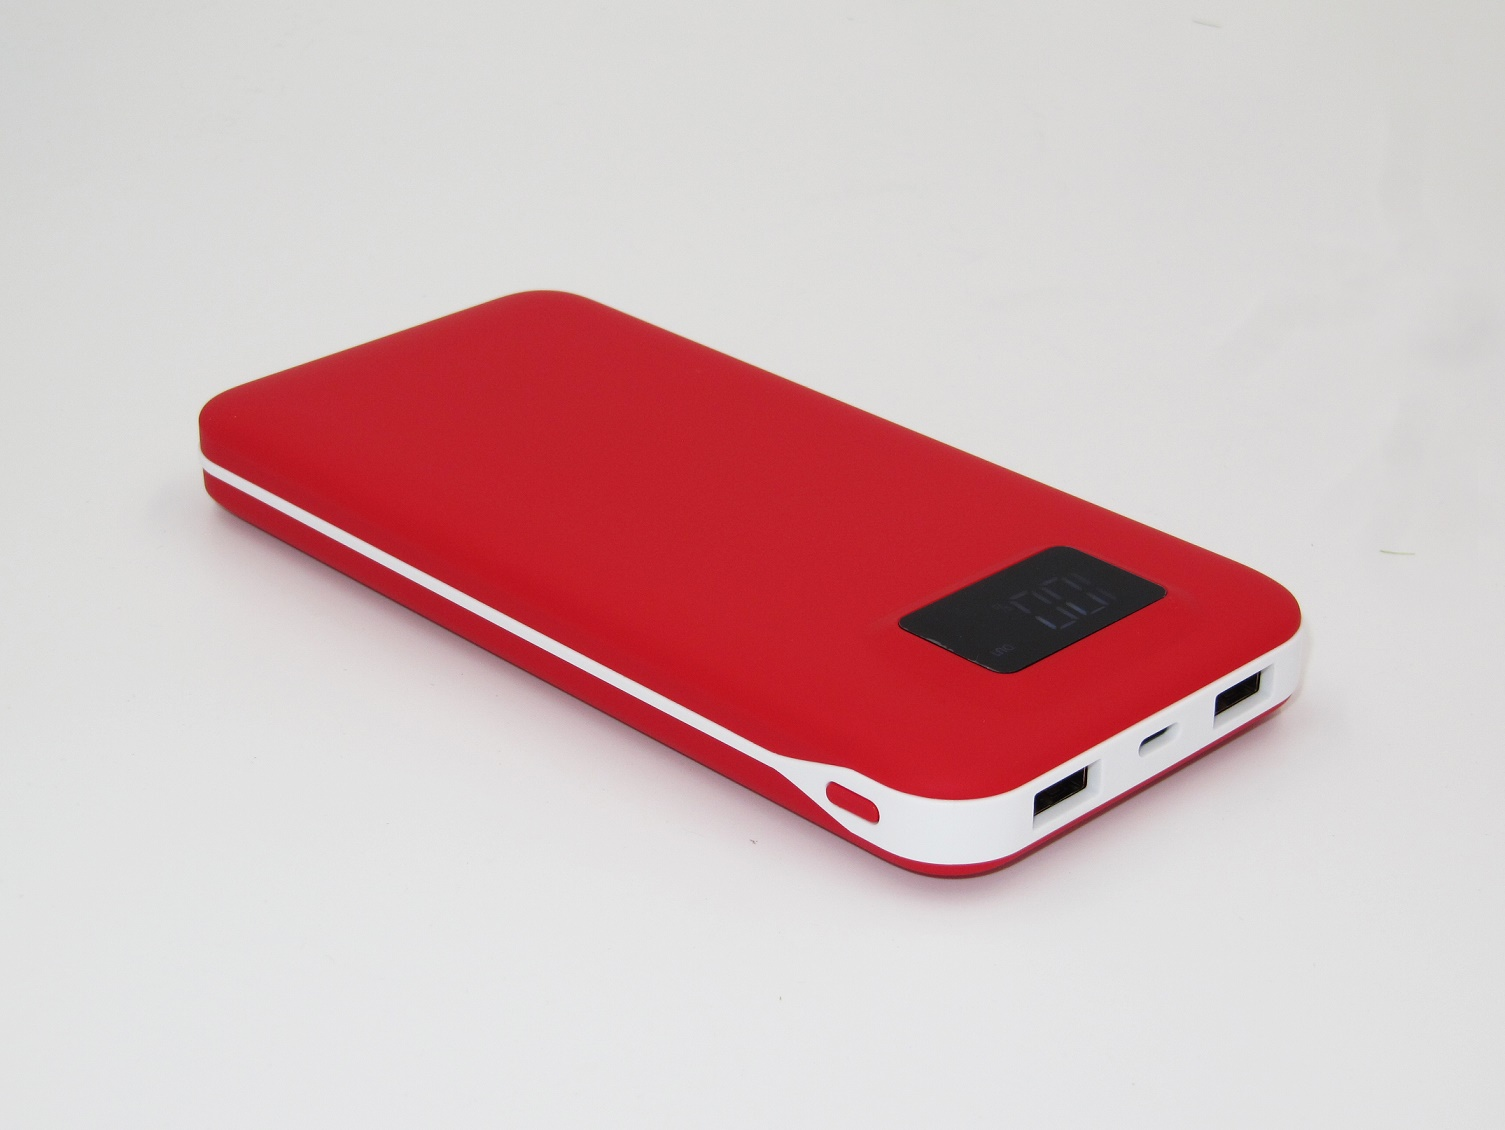 16000mAh power bank